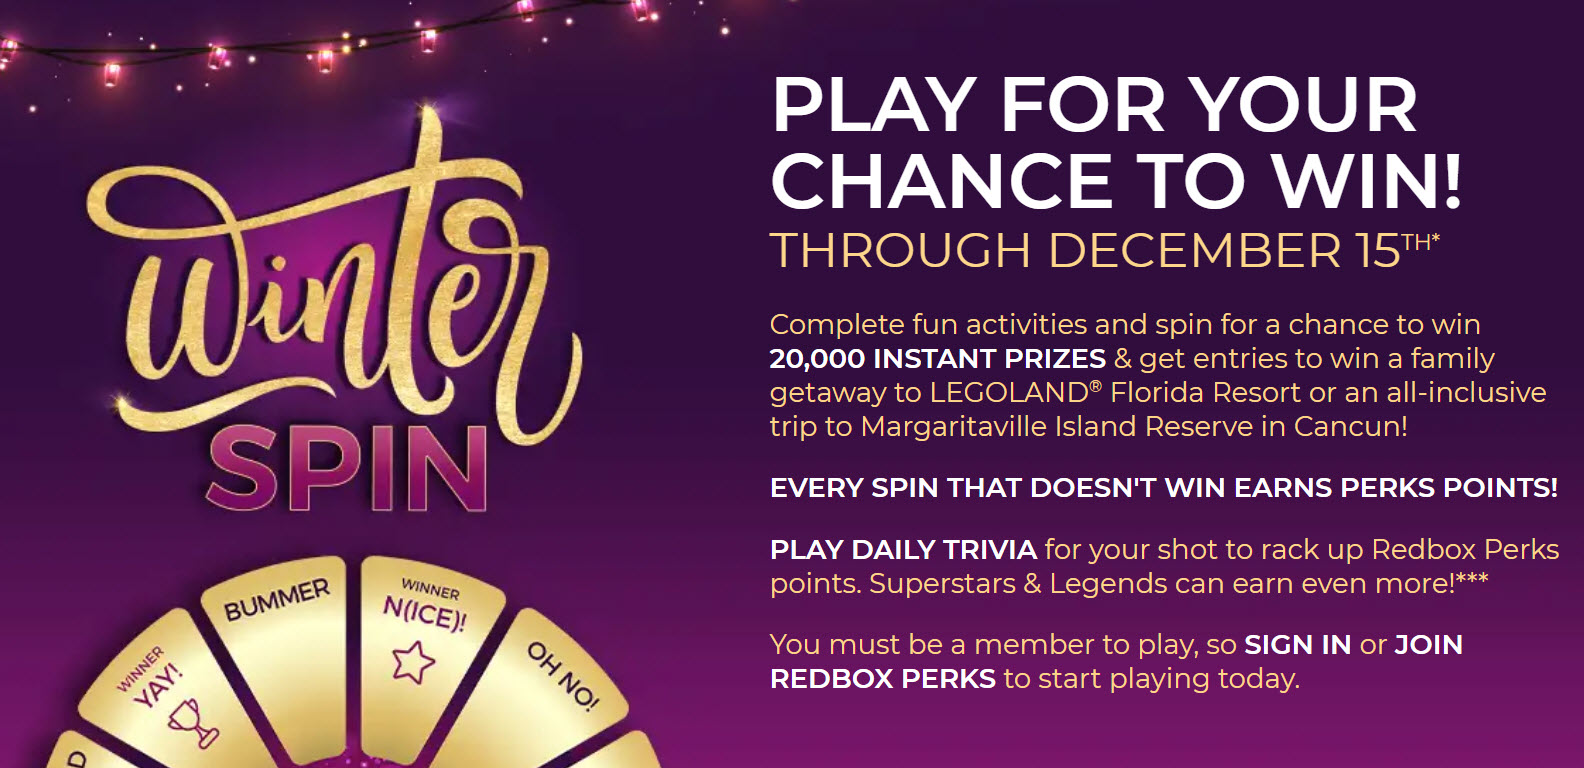 21,070 PRIZES! Play the Redbox Winter Spin Game daily through December 15th for your chance to win great prizes! Complete fun activities and spin for a chance to win20,000 INSTANT PRIZES& get entries to win a family getaway toLEGOLANDFlorida Resort or an all-inclusive trip to Margaritaville Island Reserve in Cancun!